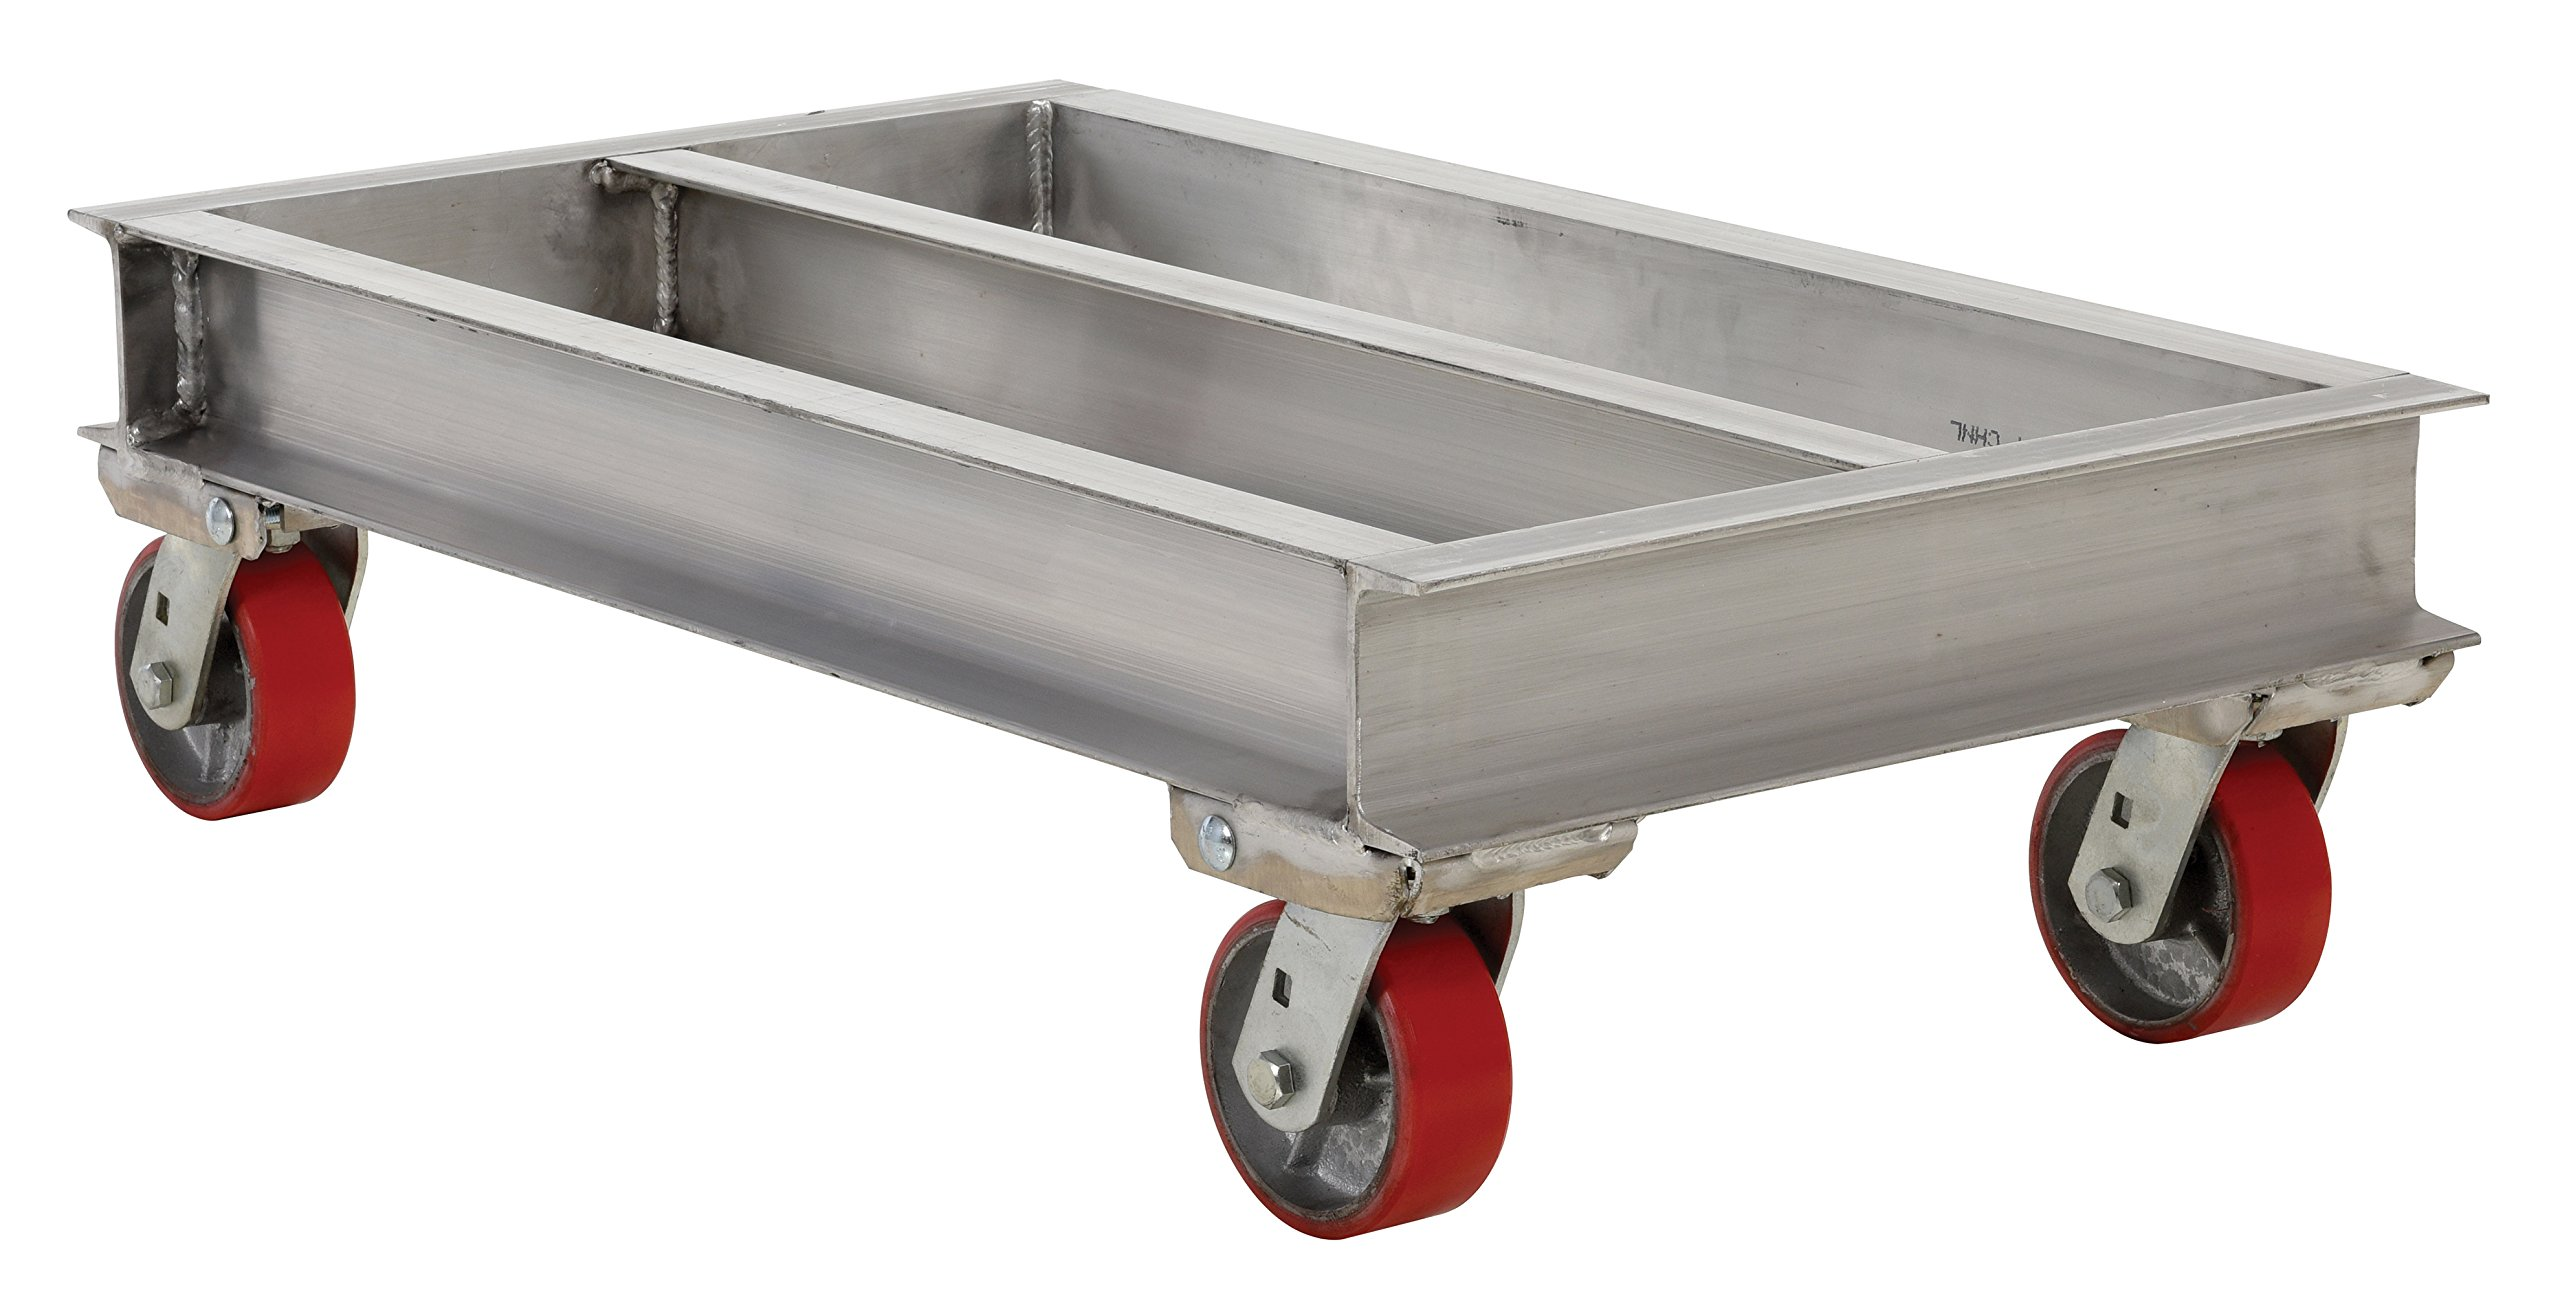 Vestil ACP-2136-20 Aluminum Channel Dolly with Poly on Steel Caster, 2000 lbs Capacity, 36'' Length x 21'' Width x 10-5/8'' Height Deck